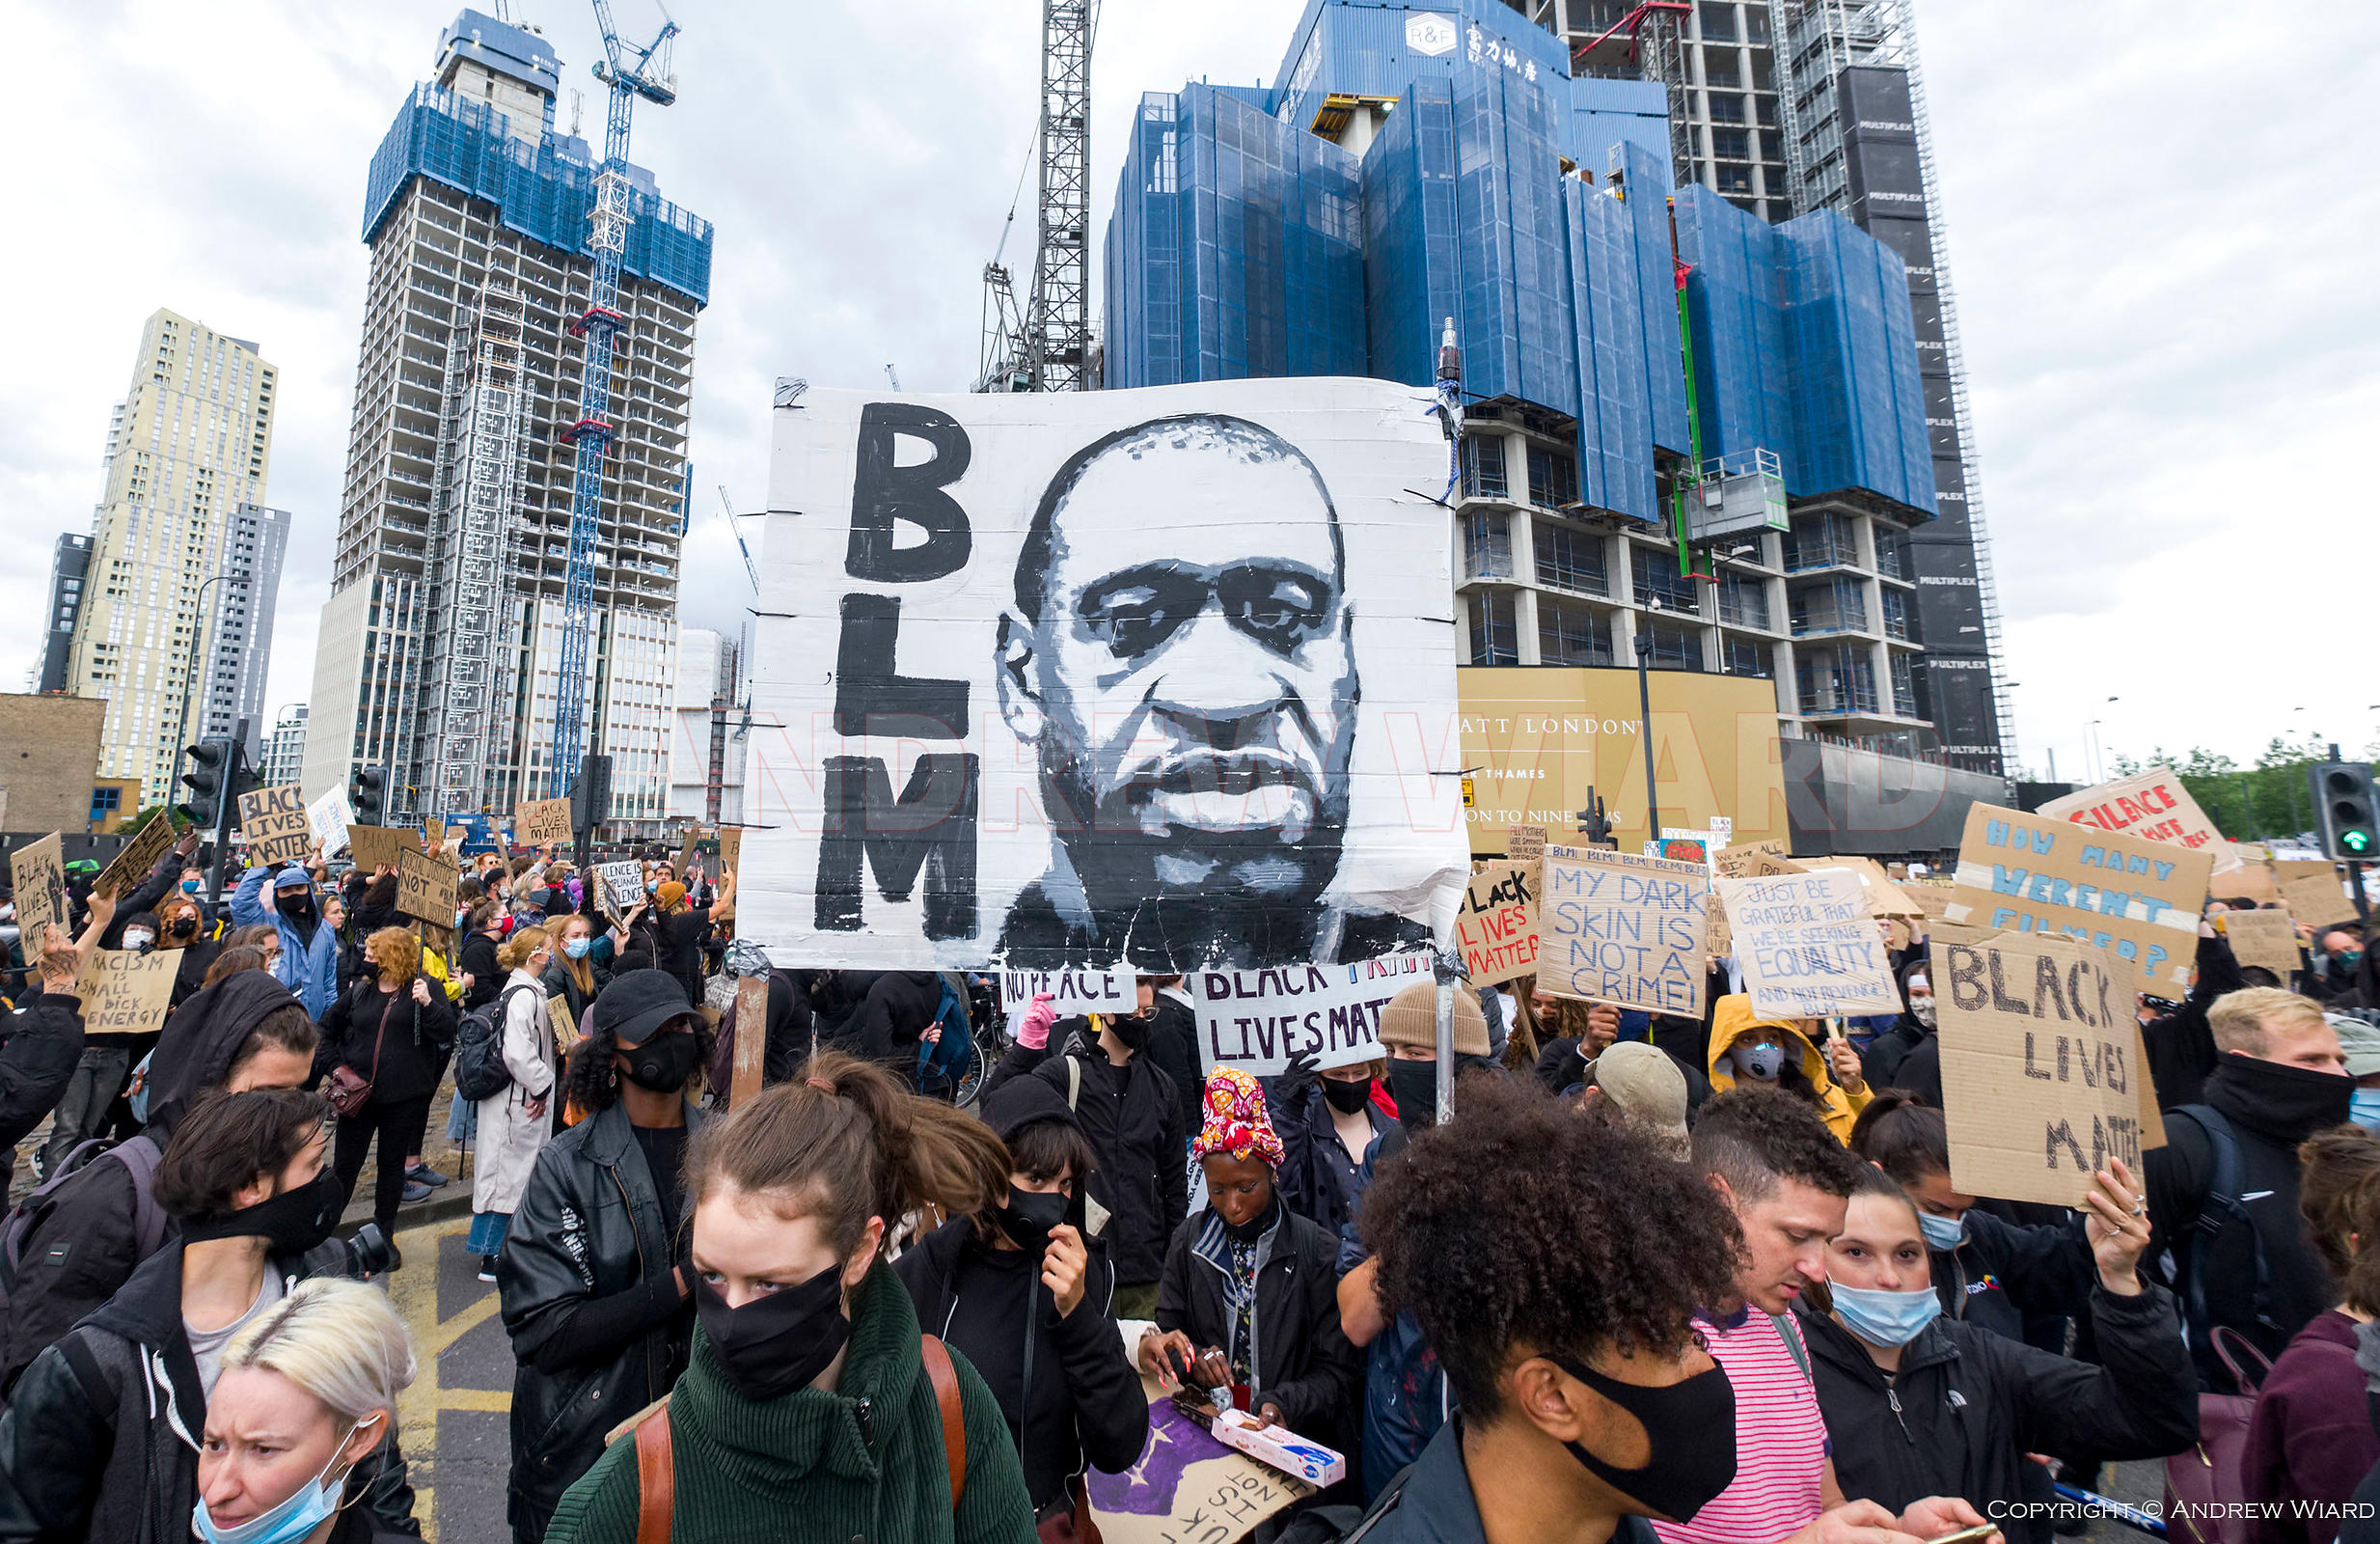 England, UK. 7.6.2020. London. Black Lives Matter demonstration against racial discrimination and police brutality following ...